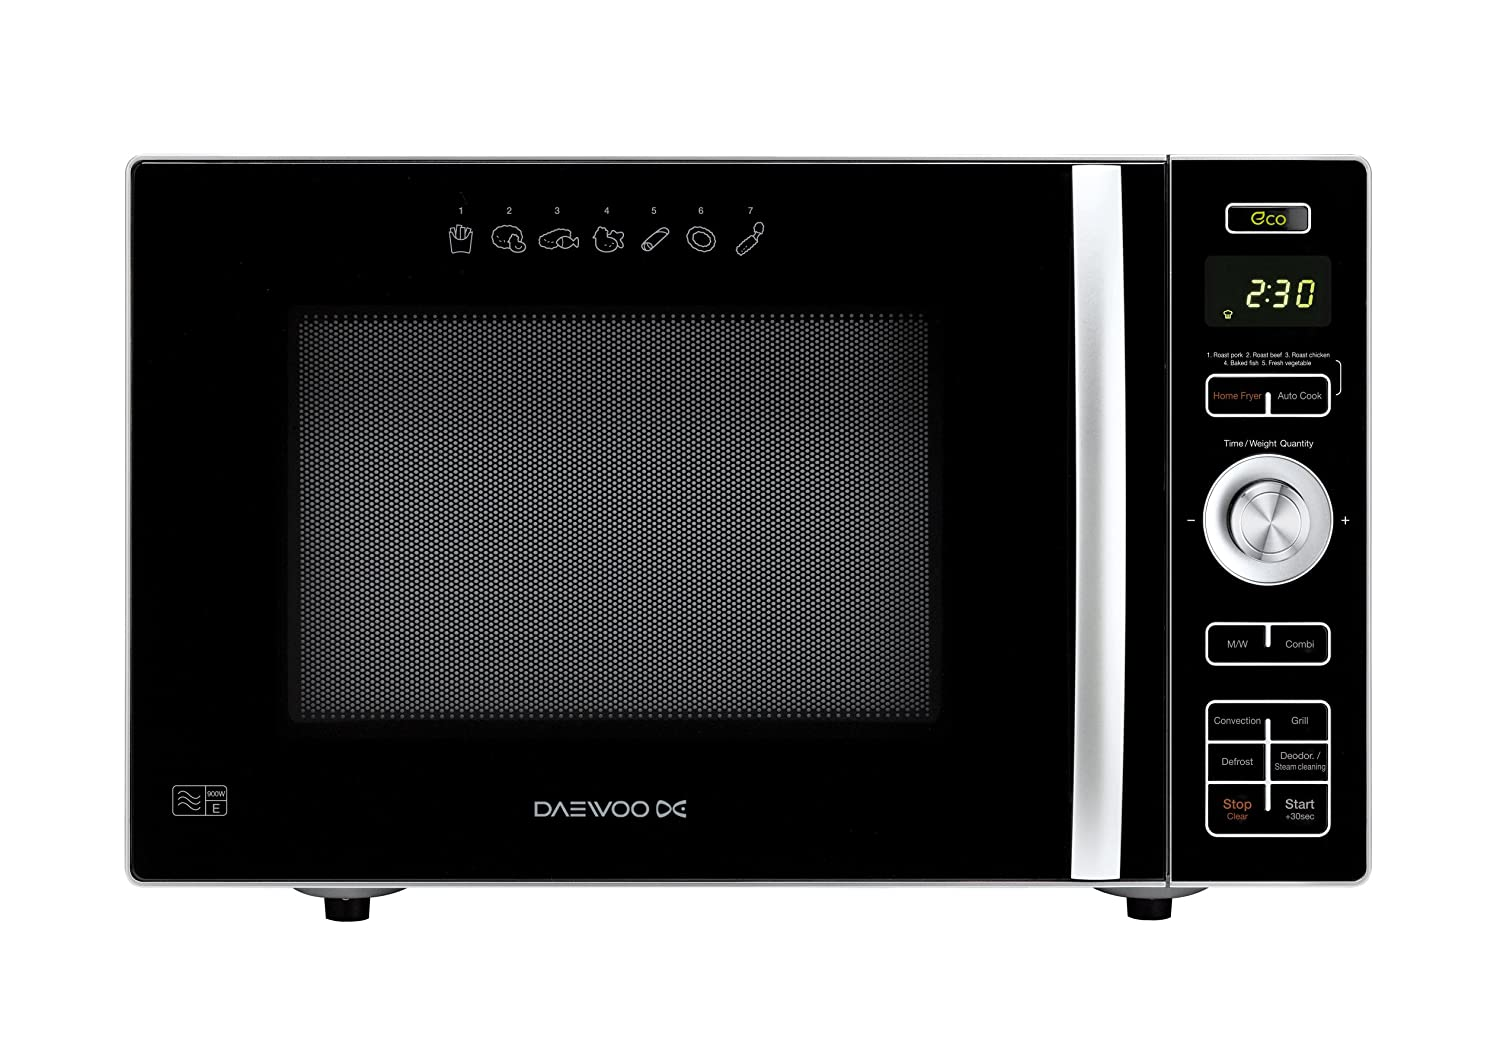 Daewoo Microwave Oven, 24 L, 900 W: Amazon.co.uk: Kitchen & Home